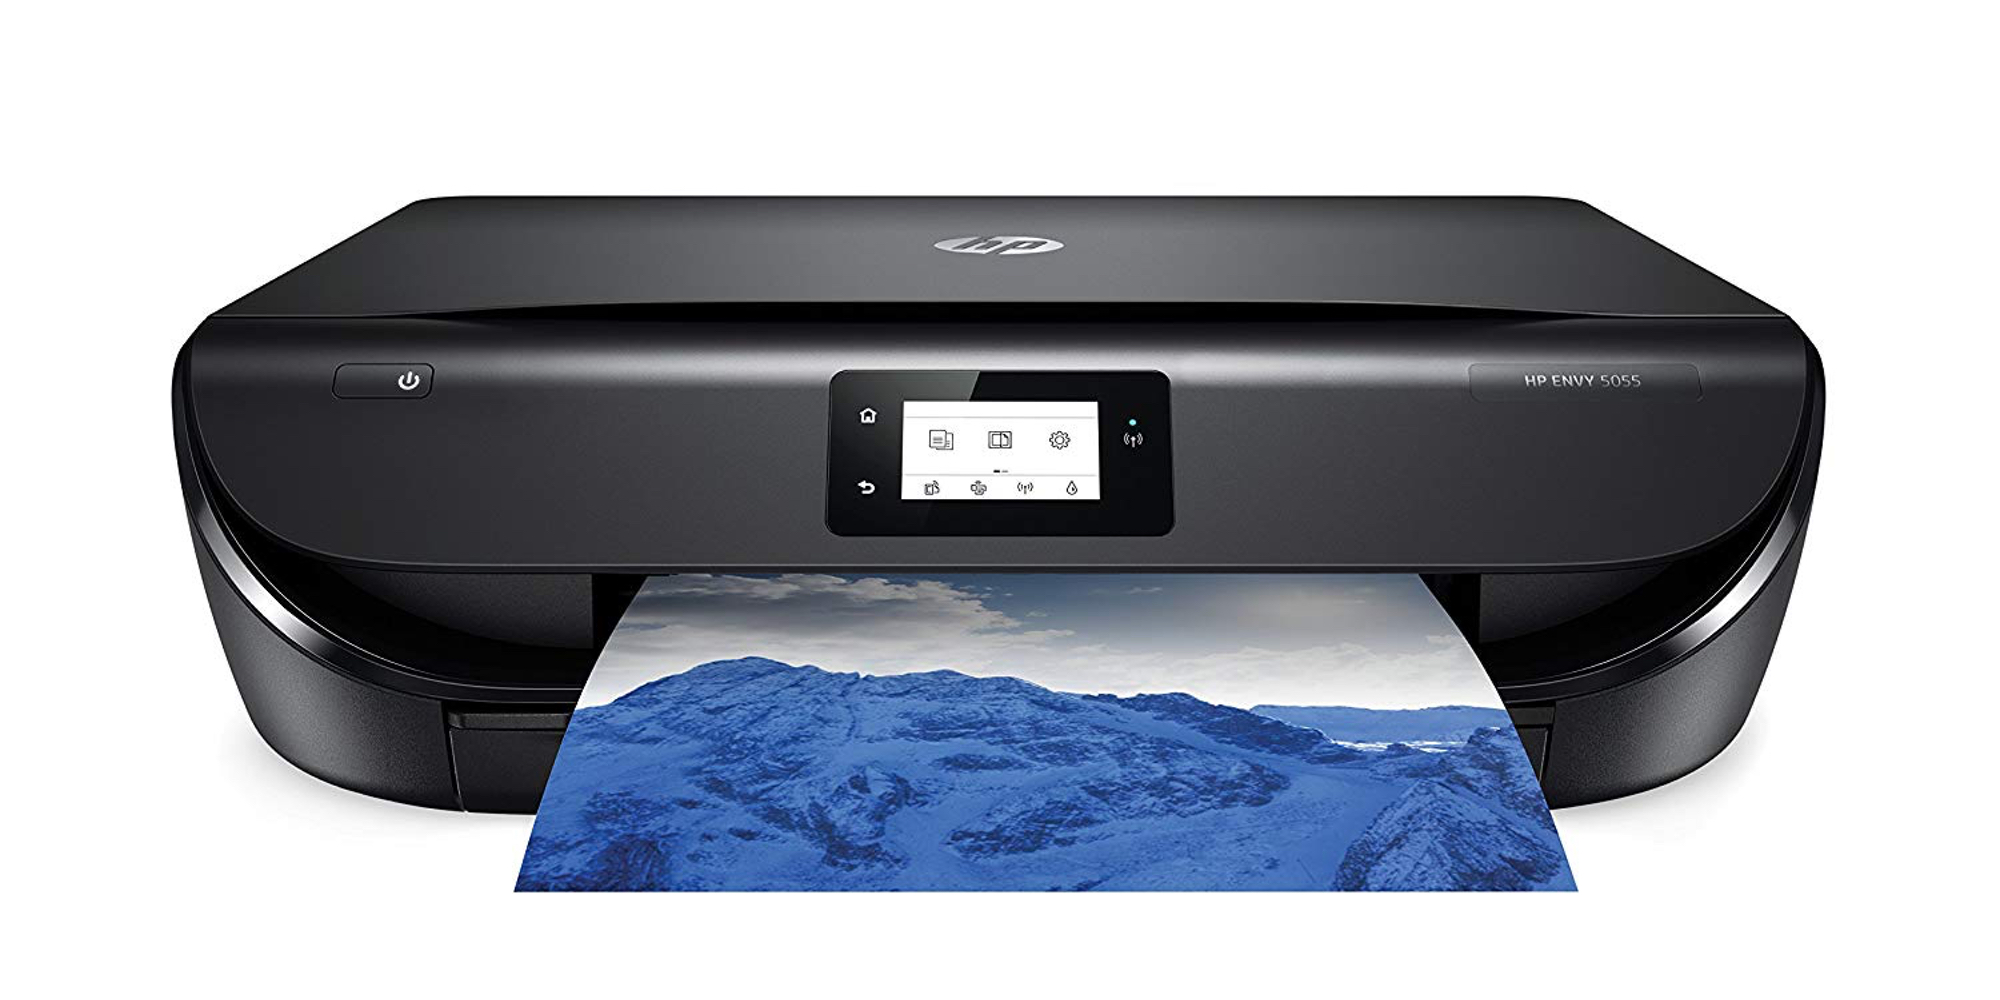 The AirPrint-equipped HP ENVY AiO Printer just dropped to a new Amazon low: $50 (Reg. $100)